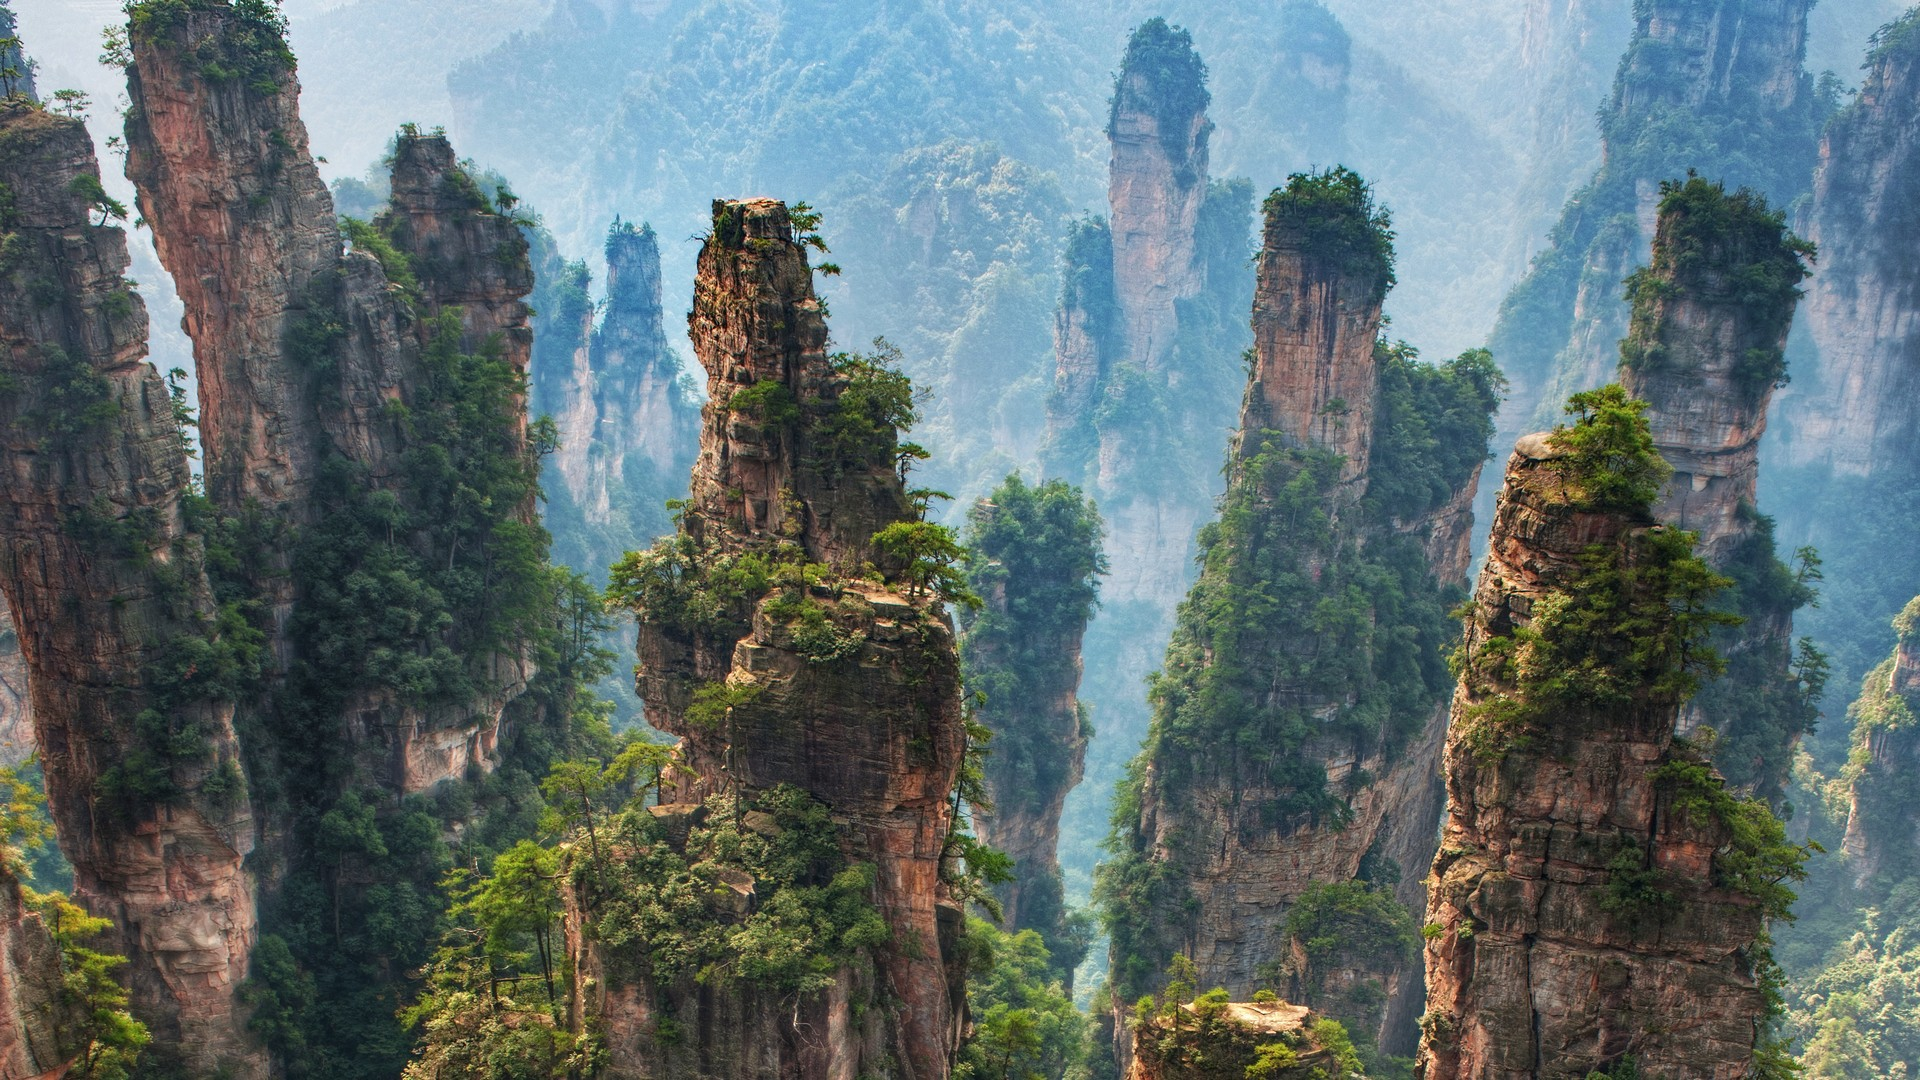 Célèbre Zhangjiajie National Forest Park, China - Most Beautiful Spots QV54